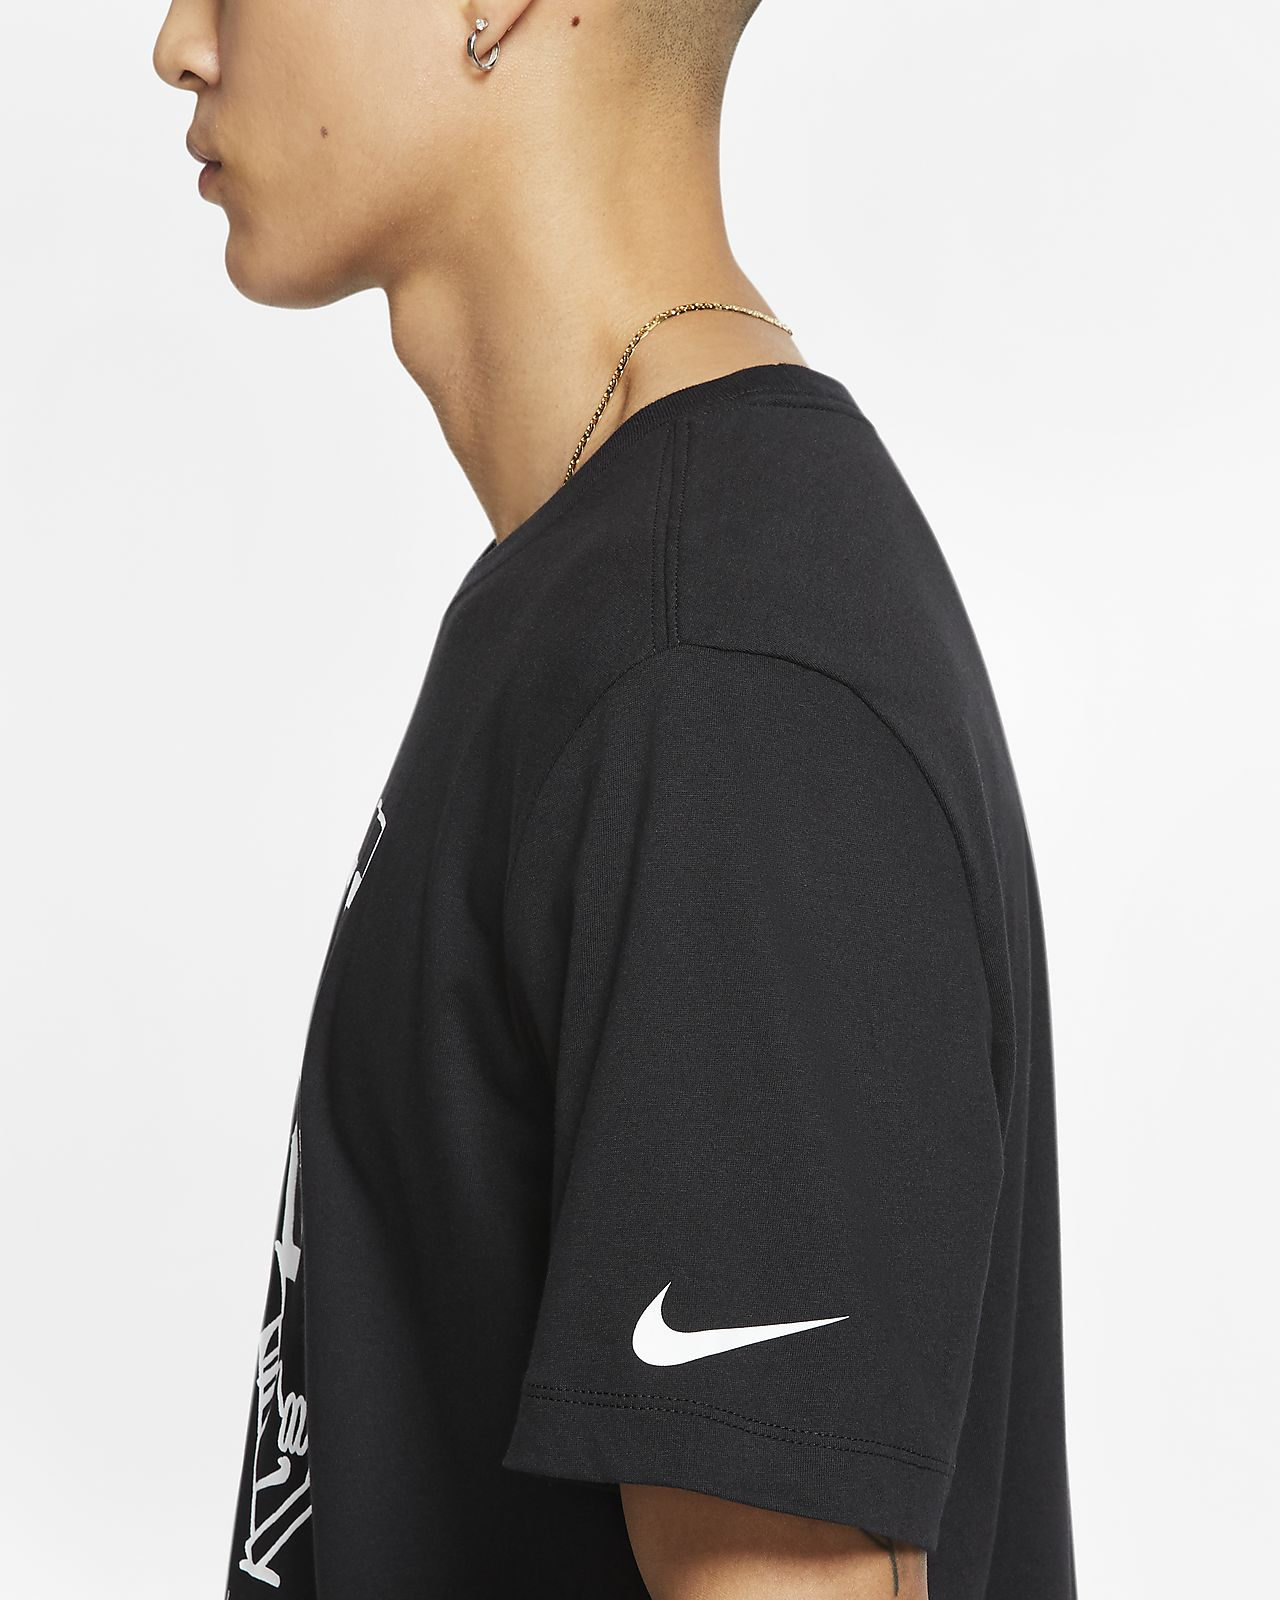 camiseta nike dri fit just do it